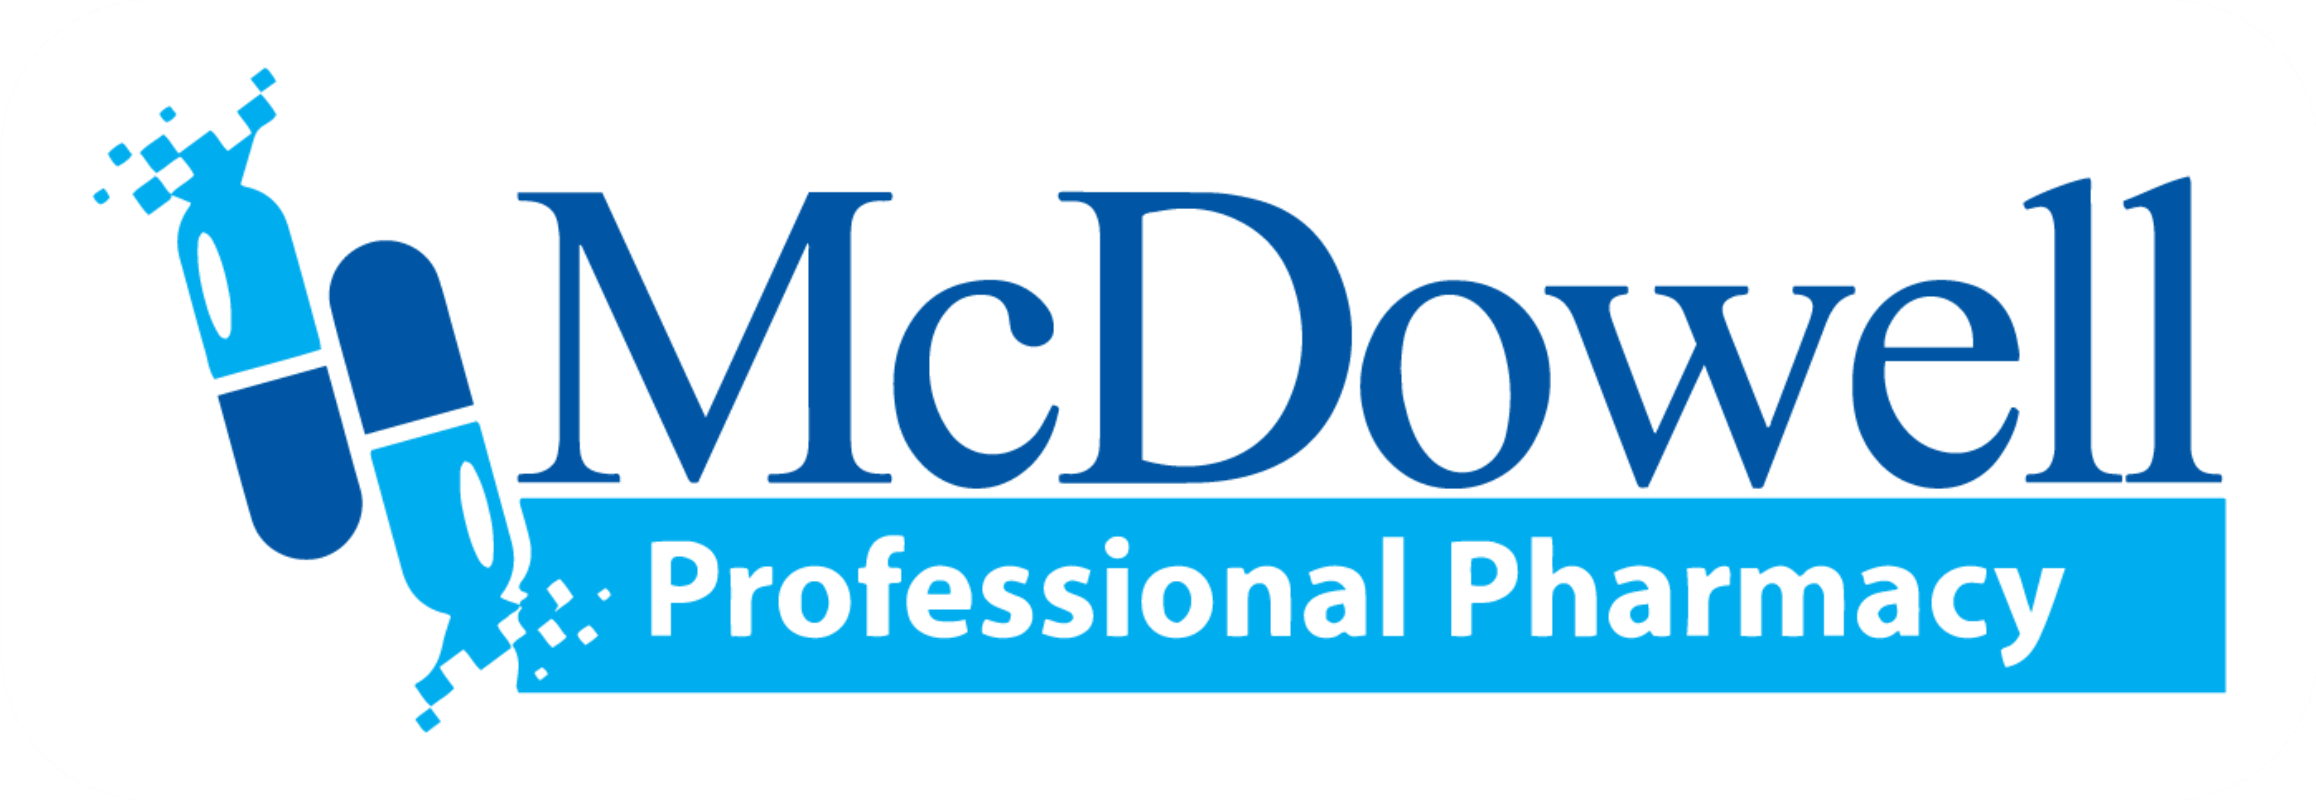 Mcdowell Professional Pharmacy